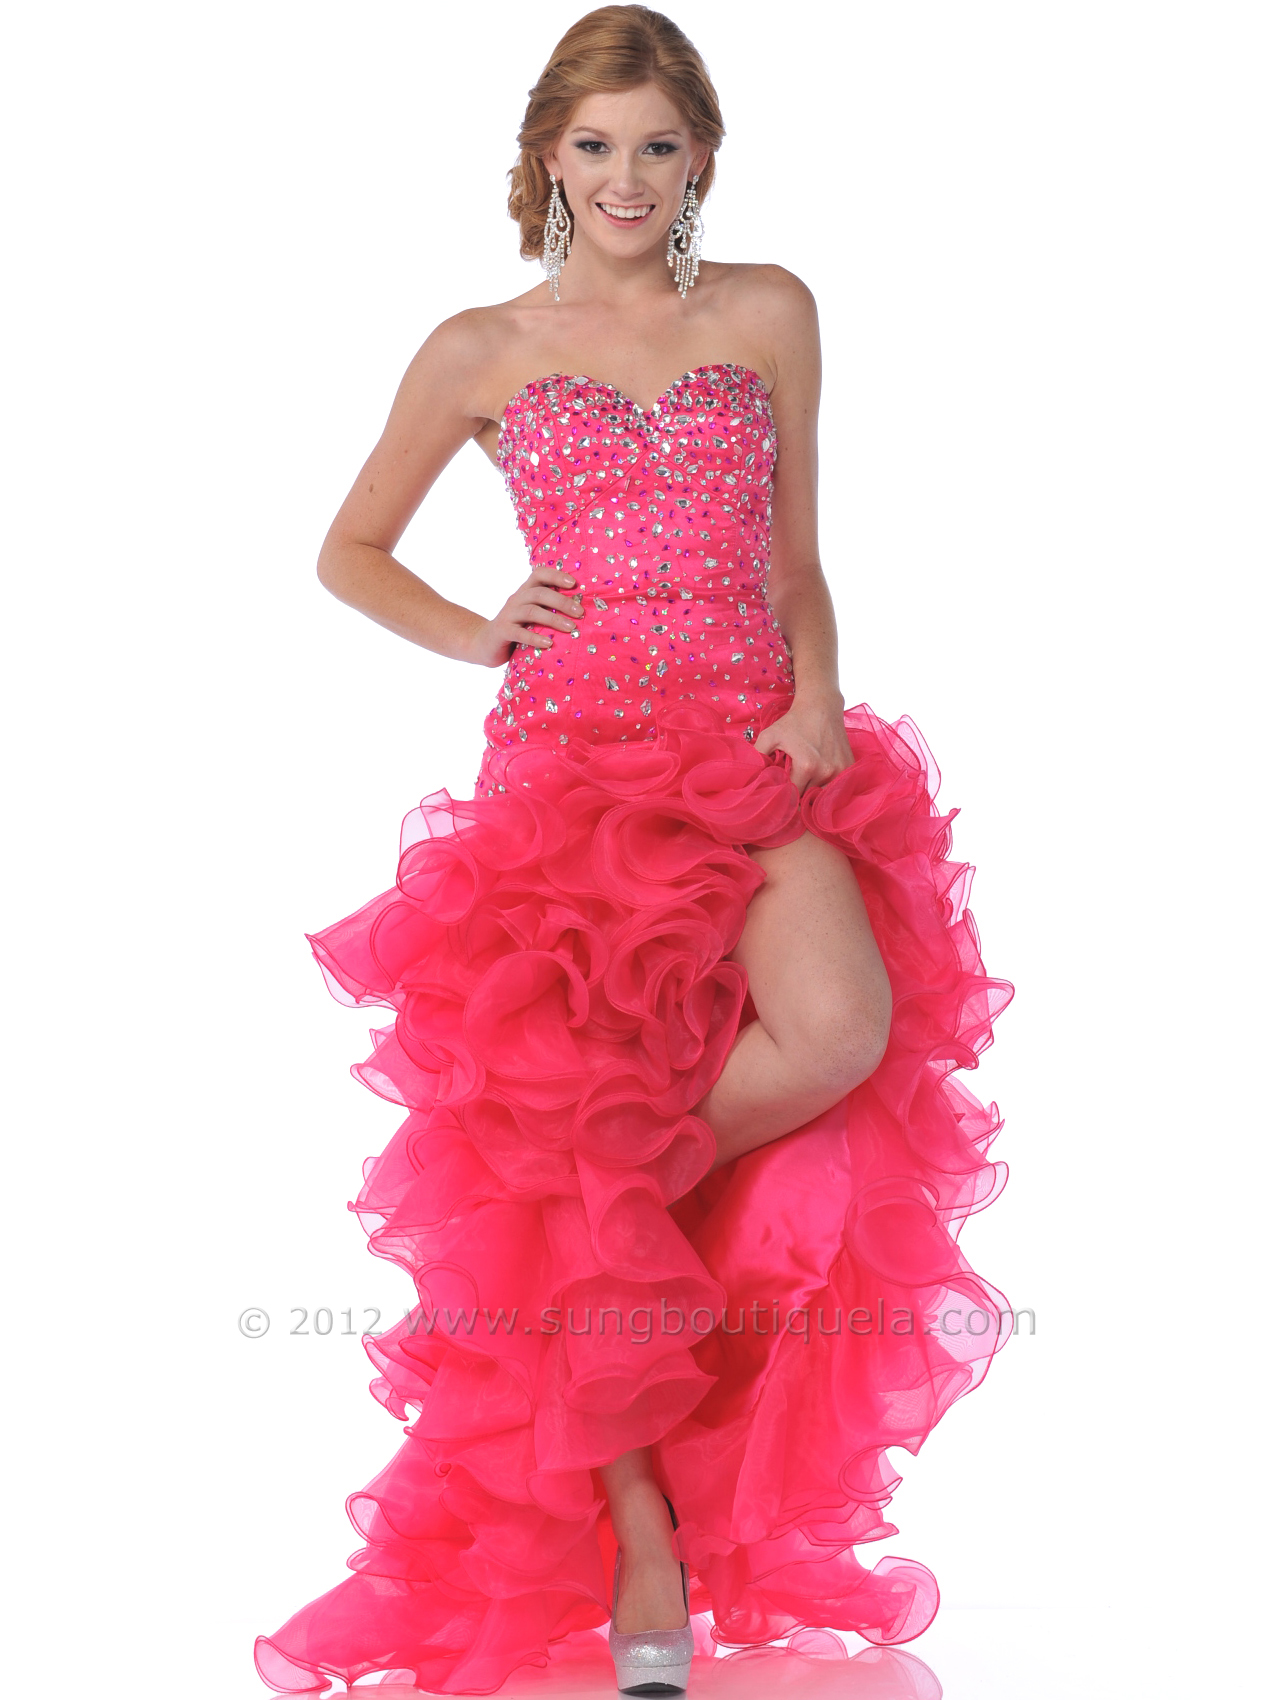 Strapless Sweetheart High Low Prom Dress | Sung Boutique L.A.